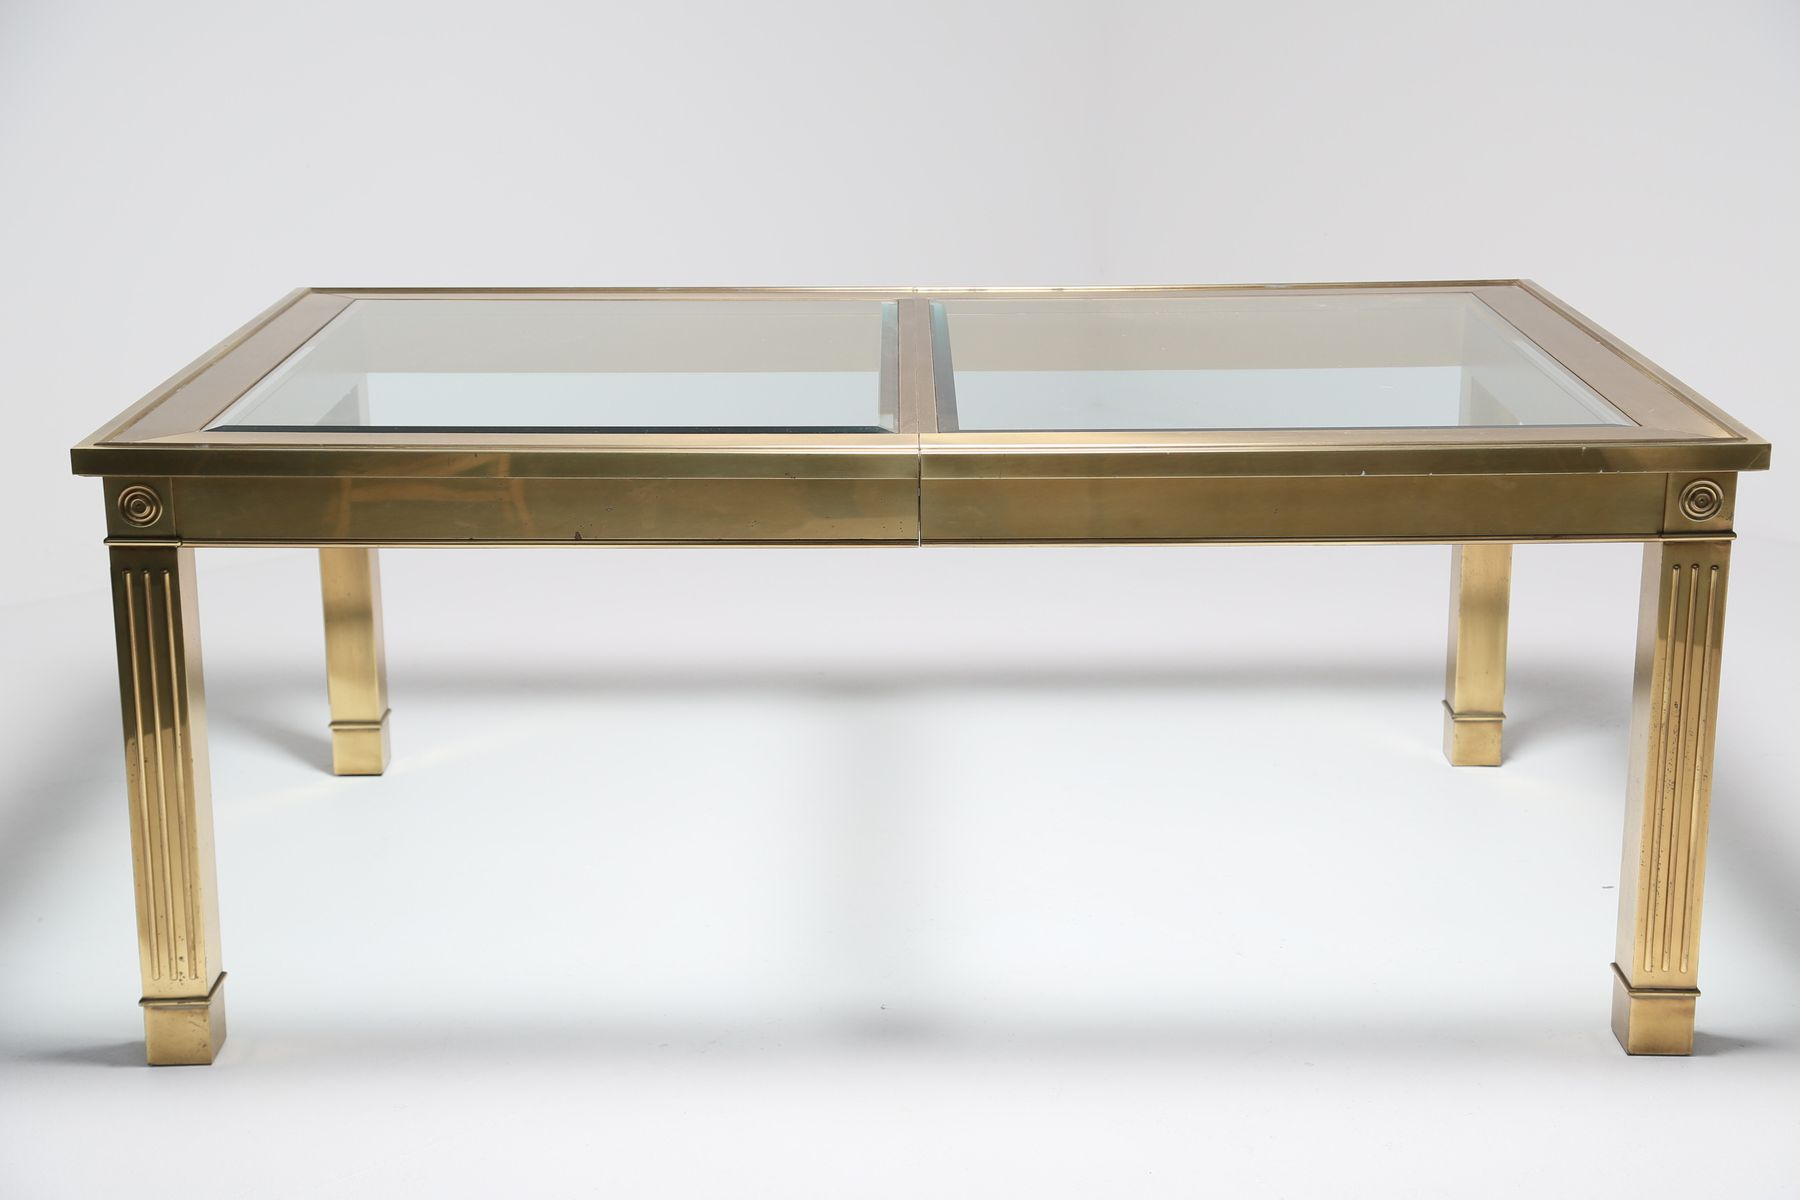 Mastercraft brass dining table - Extendable Brass Dining Table From Mastercraft